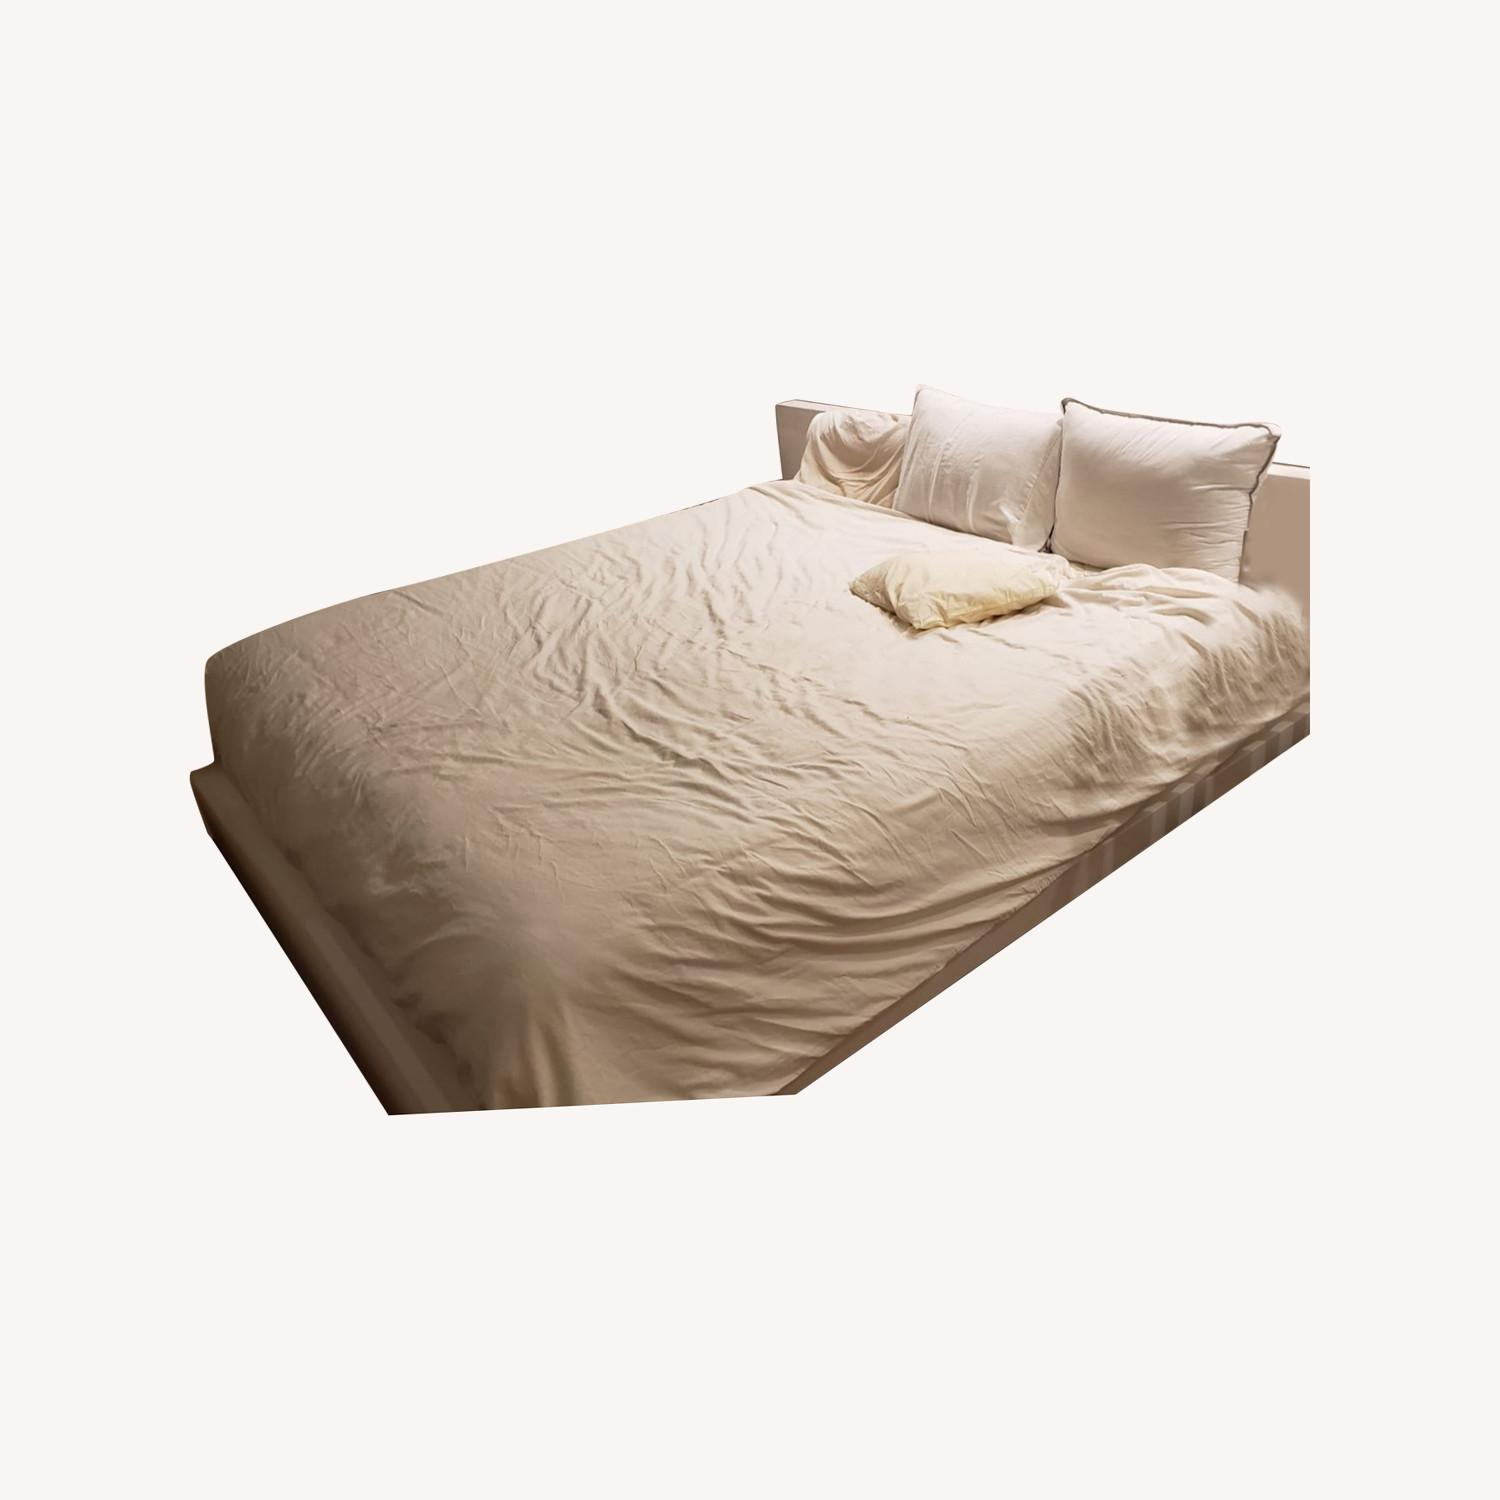 Glossy Queen Bed - image-0